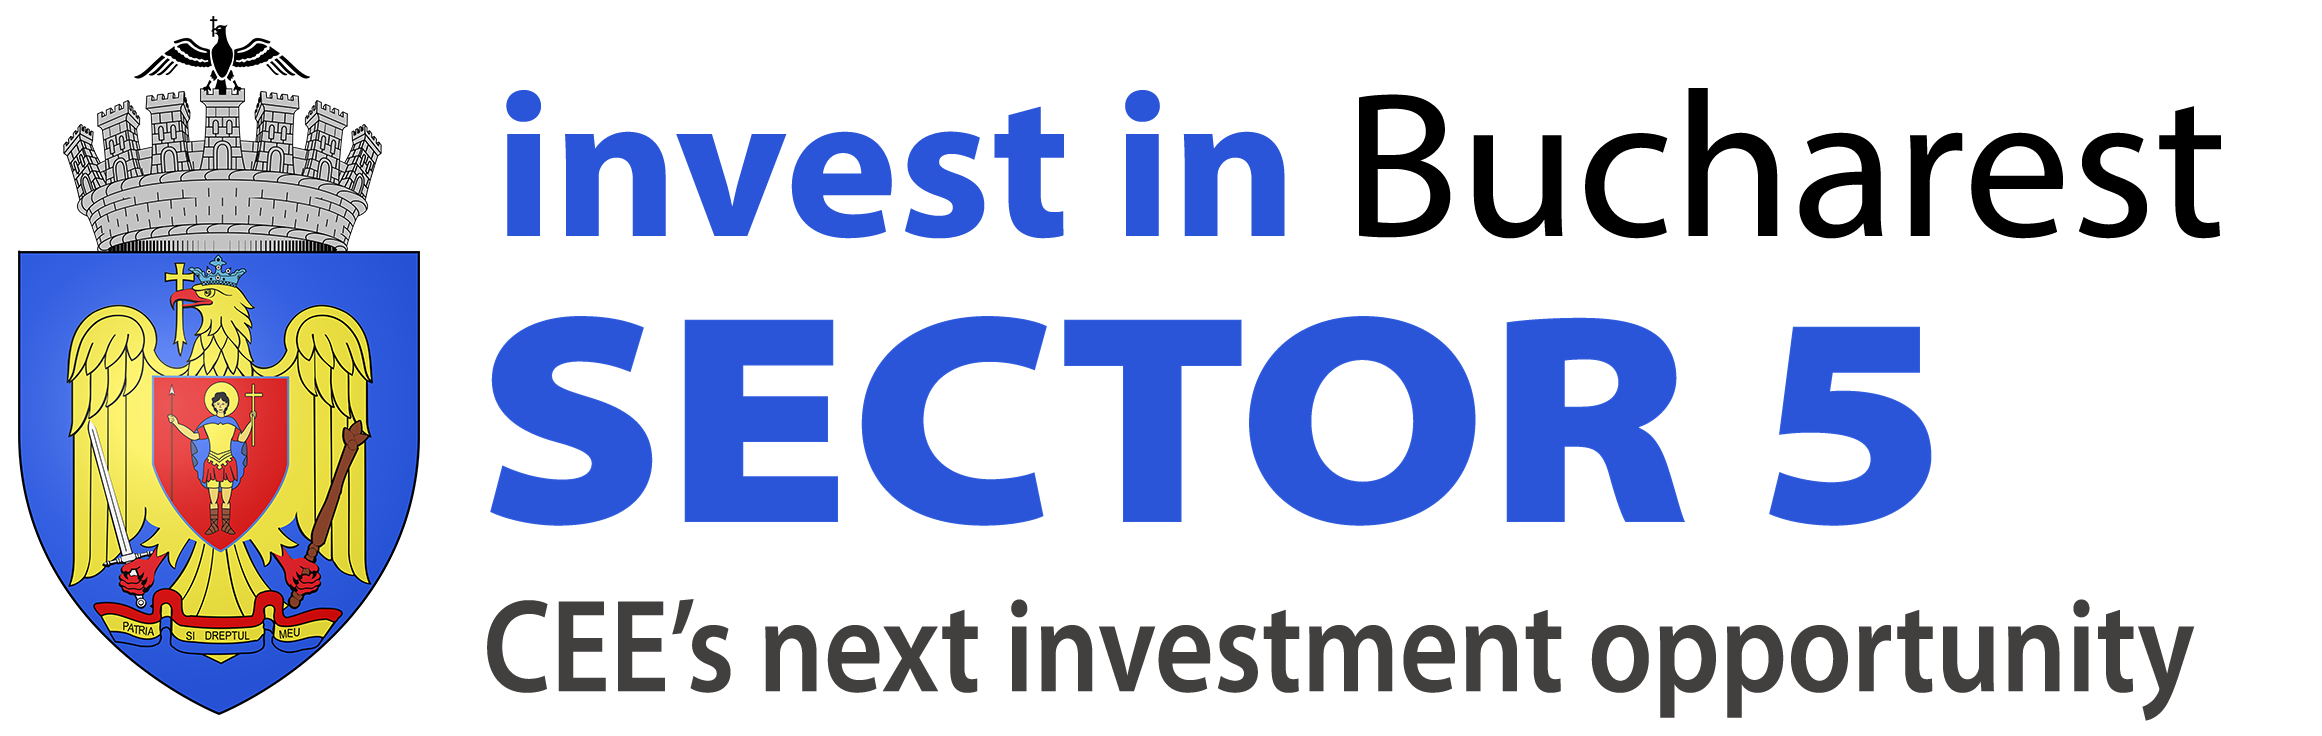 5invest - CEE's next investment opportunity